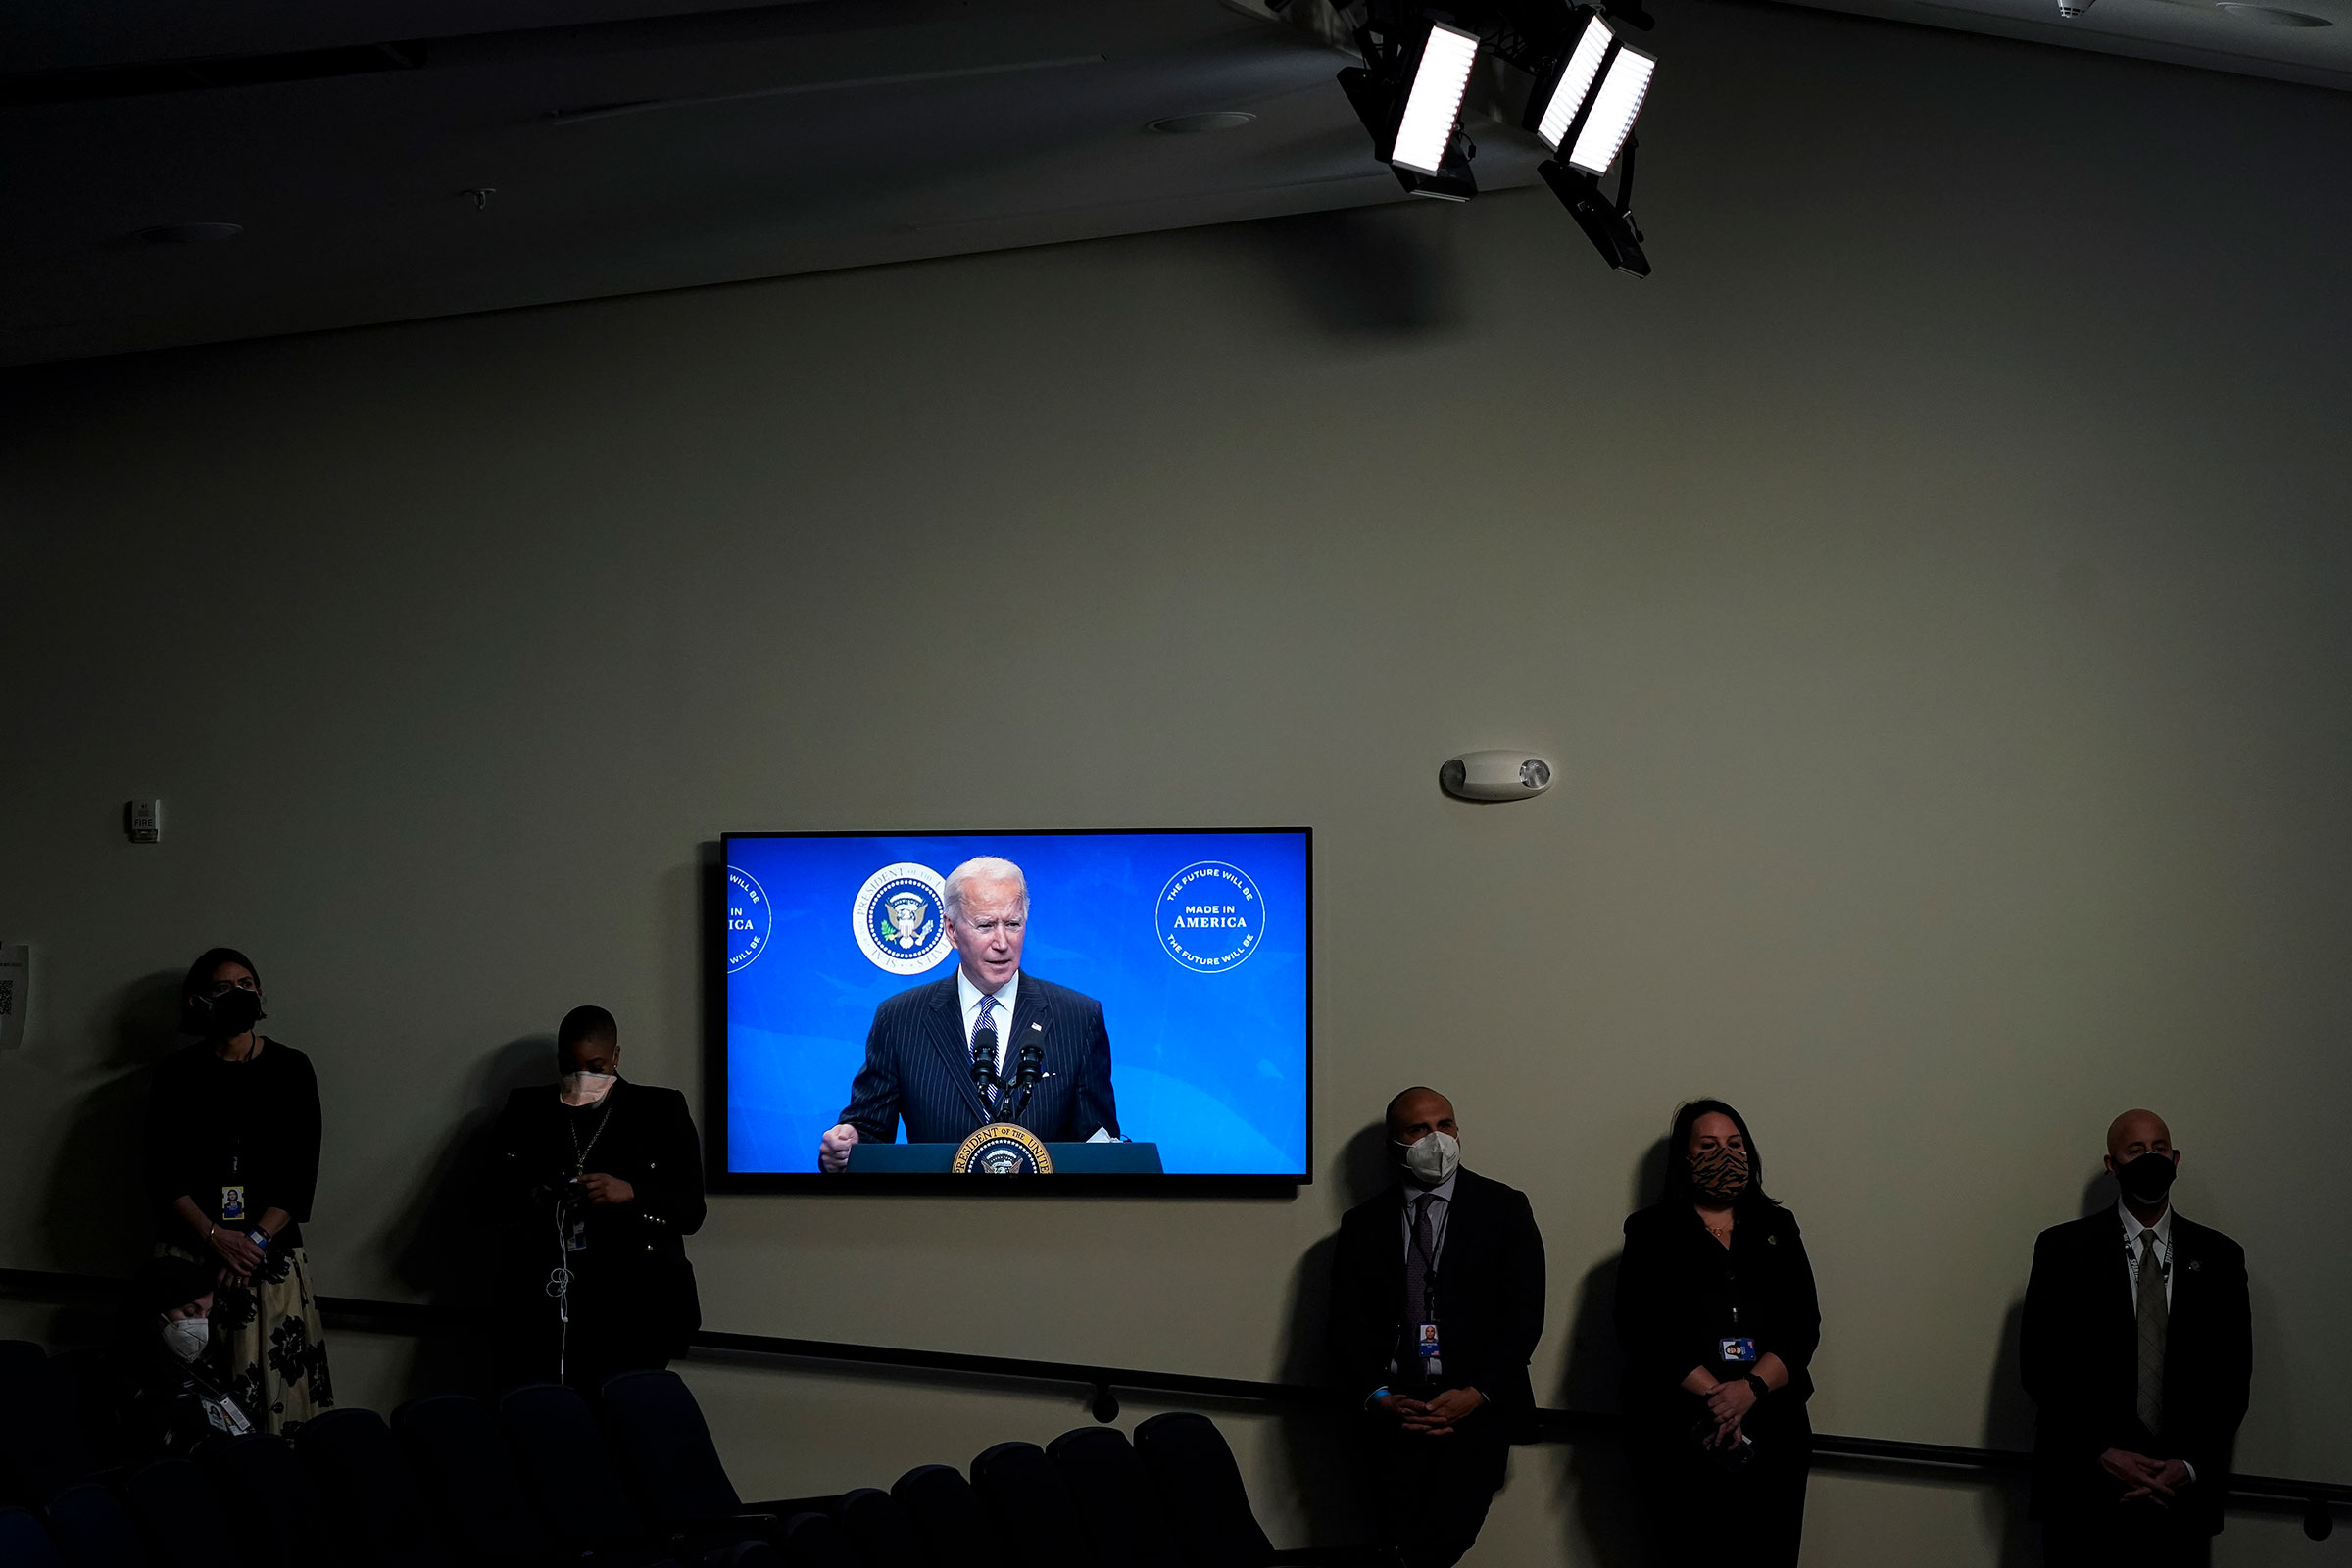 President Joe Biden is displayed on a screen while speaking after signing an executive order in the South Court Auditorium of the White House complex on Jan. 25, 2021.